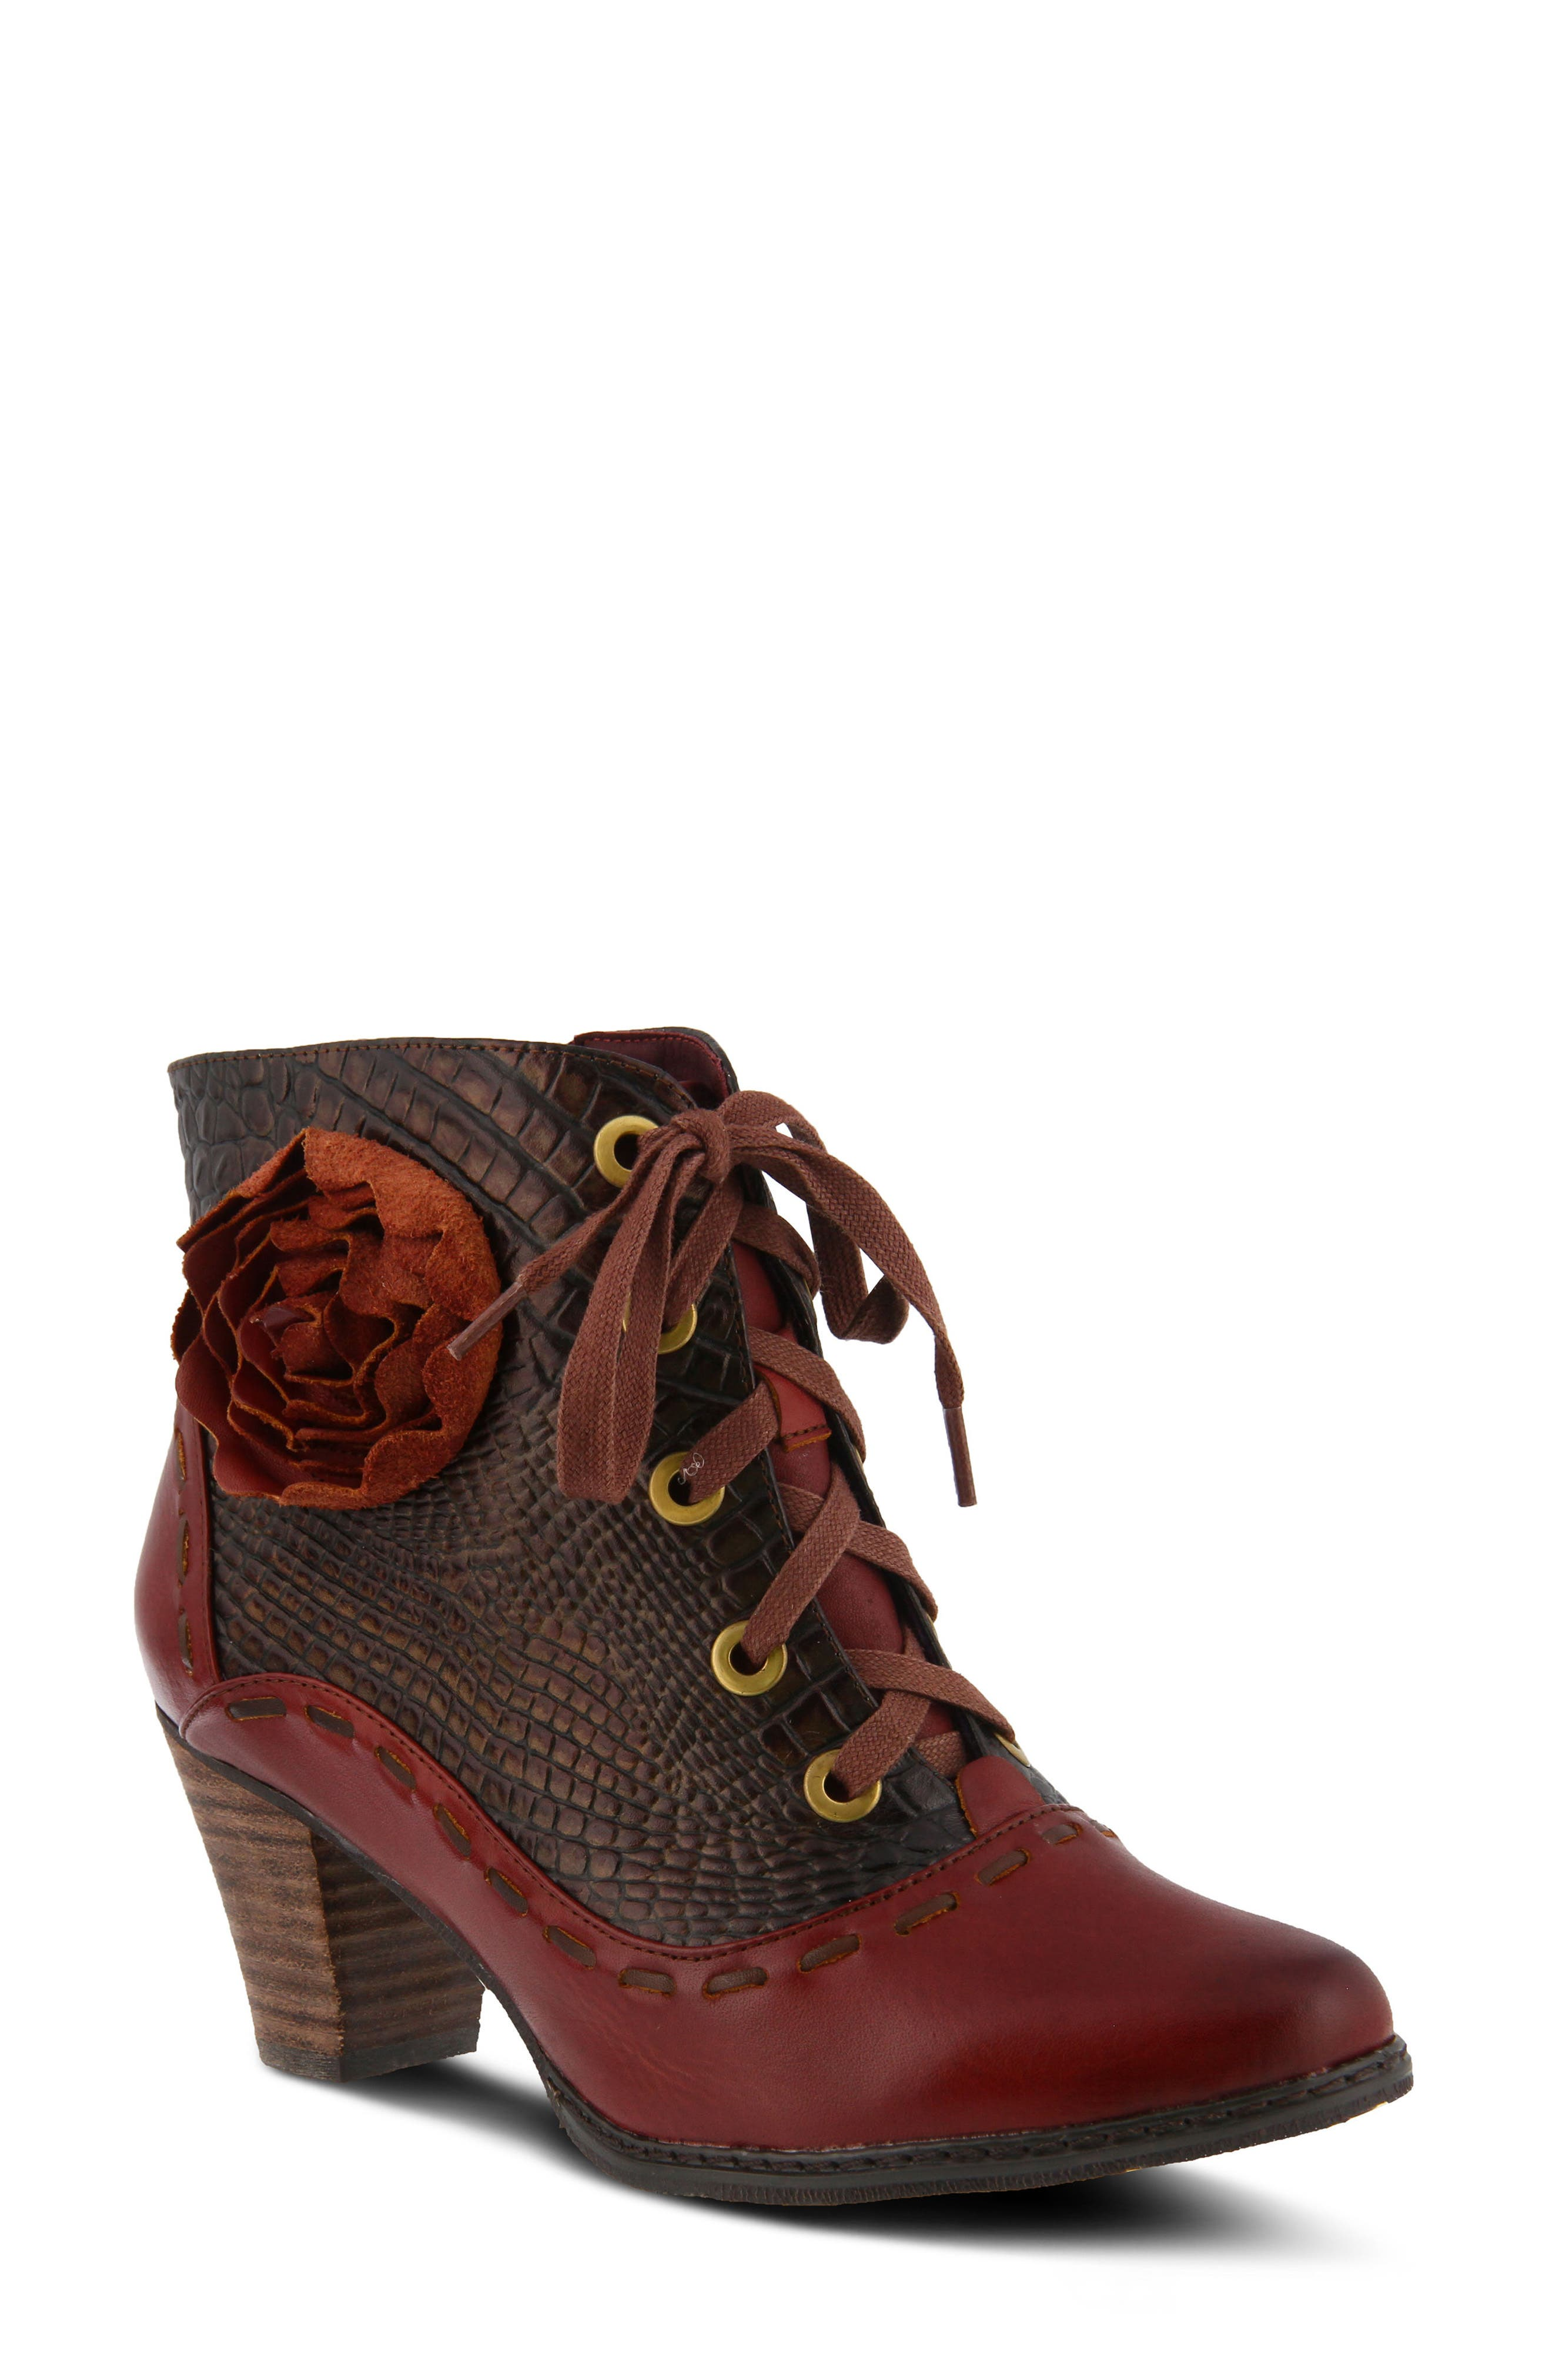 L'Artiste Sufi Bootie,                             Main thumbnail 1, color,                             BORDEAUX LEATHER